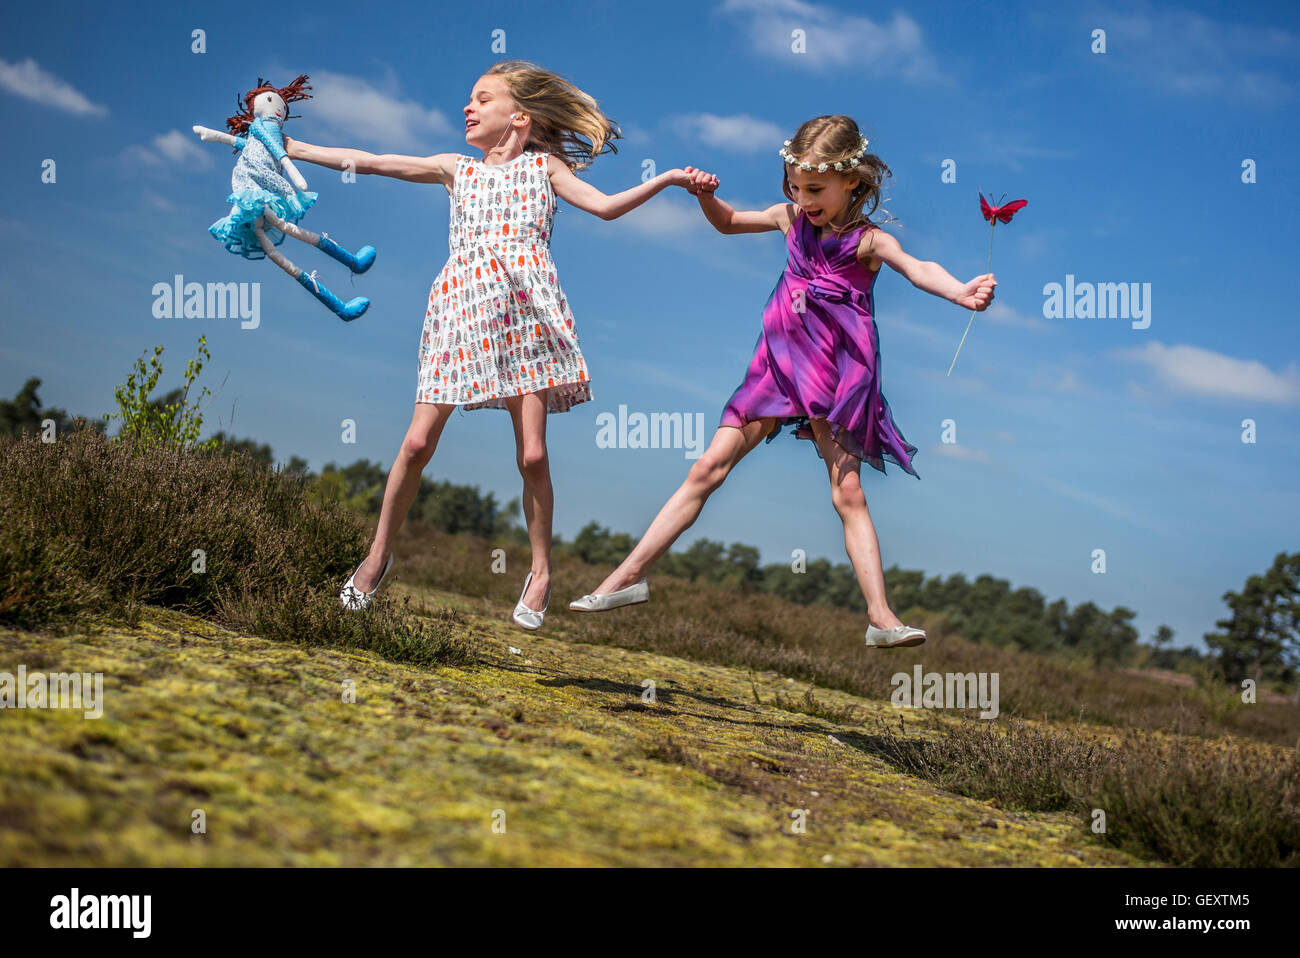 Identical twin sisters play together in the open air. - Stock Image